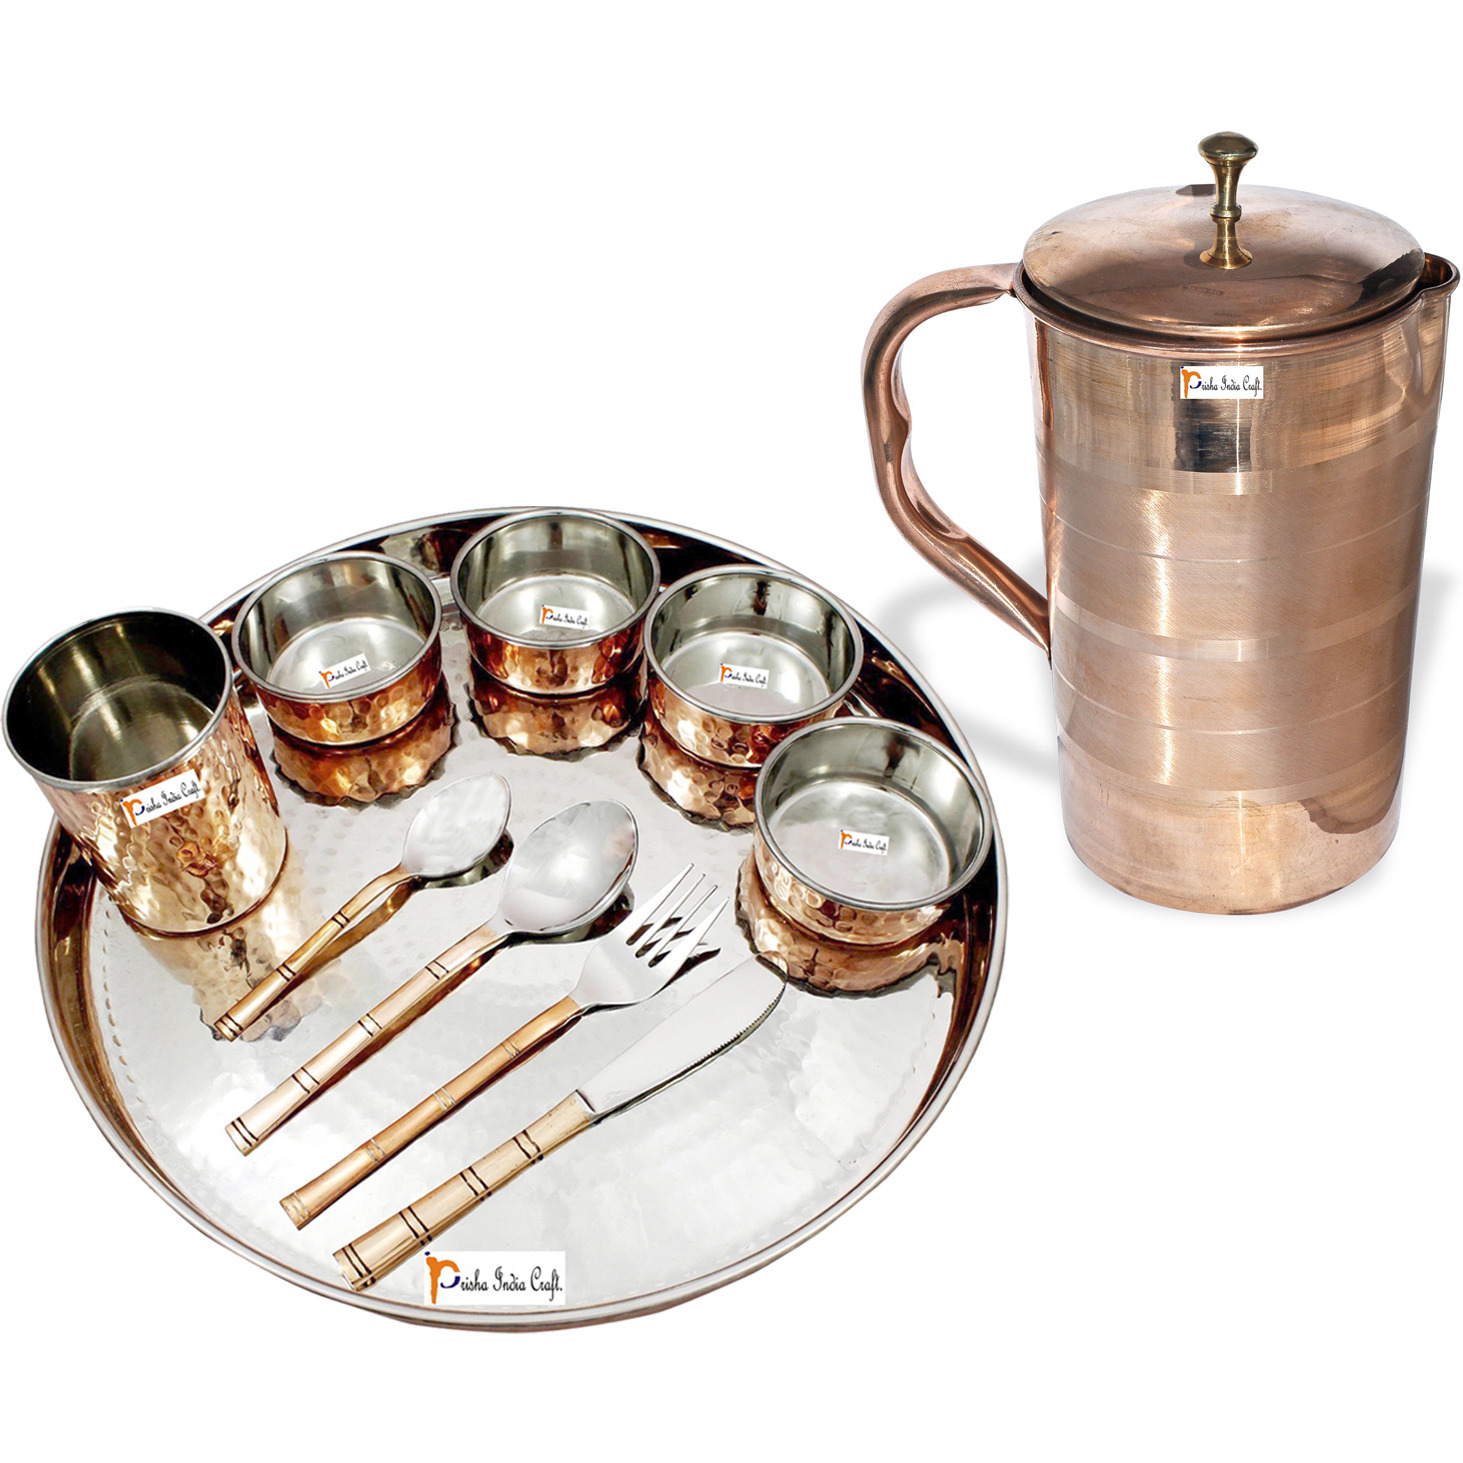 Prisha India Craft B. Dinnerware Traditional Stainless Steel Copper Dinner Set of Thali Plate, Bowls, Glass and Spoons, Dia 13  With 1 Luxury Style Pure Copper Pitcher Jug - Christmas Gift